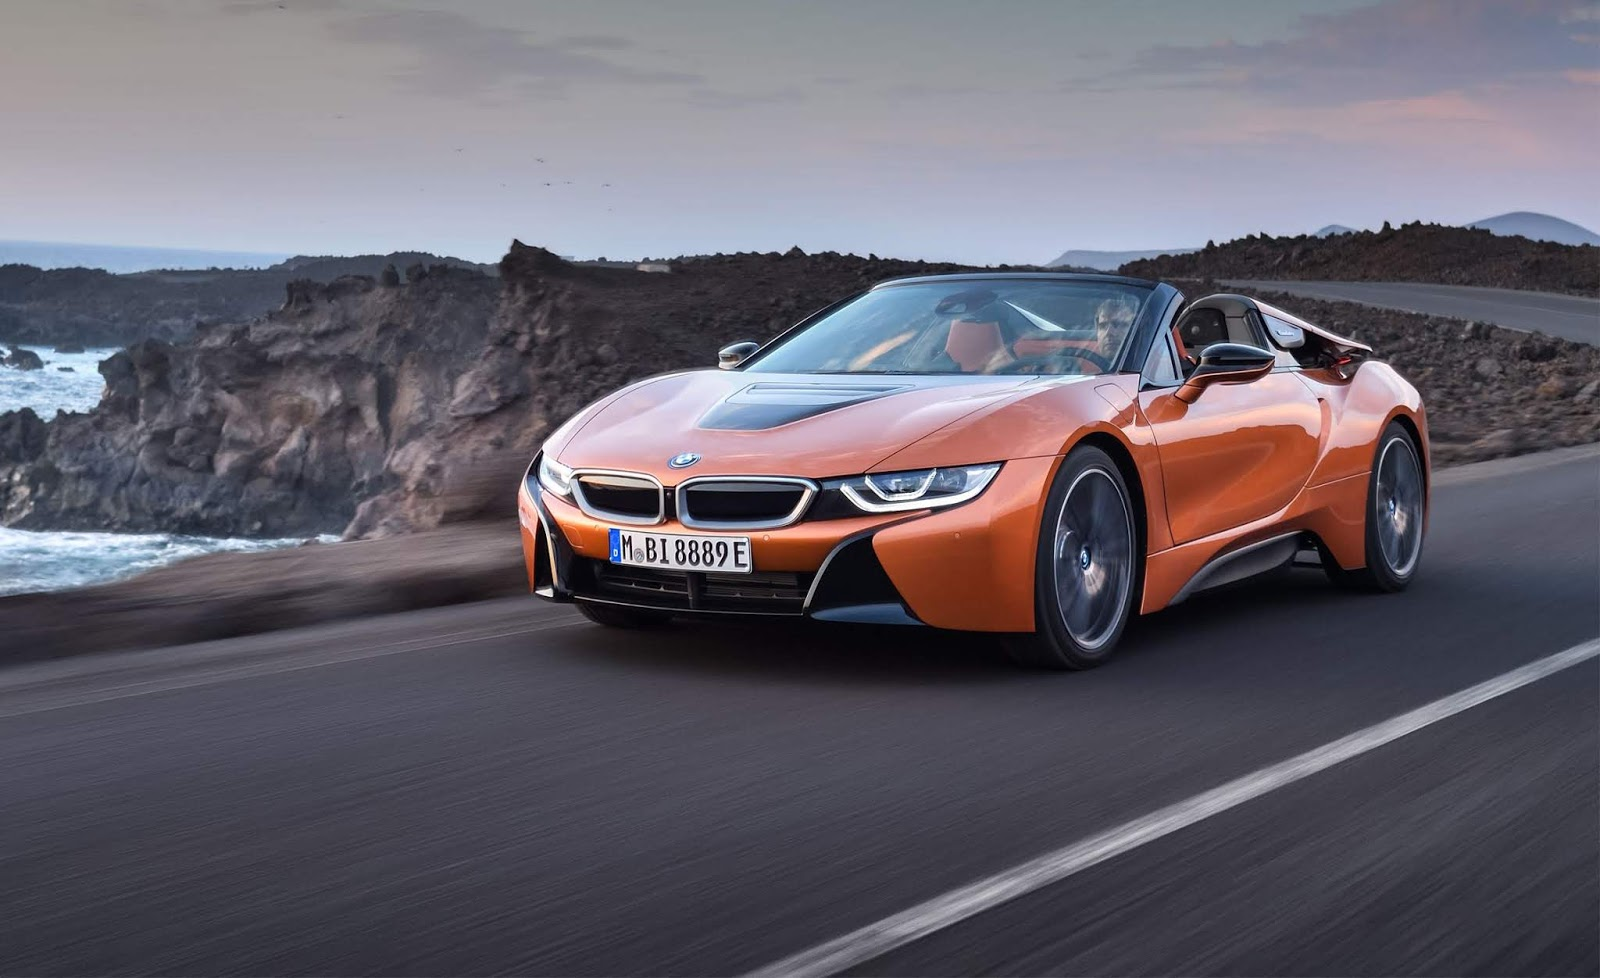 Car Review Driving A Plug In Hybrid Isn T Boring With The Exotic Bmw I8 Roadster